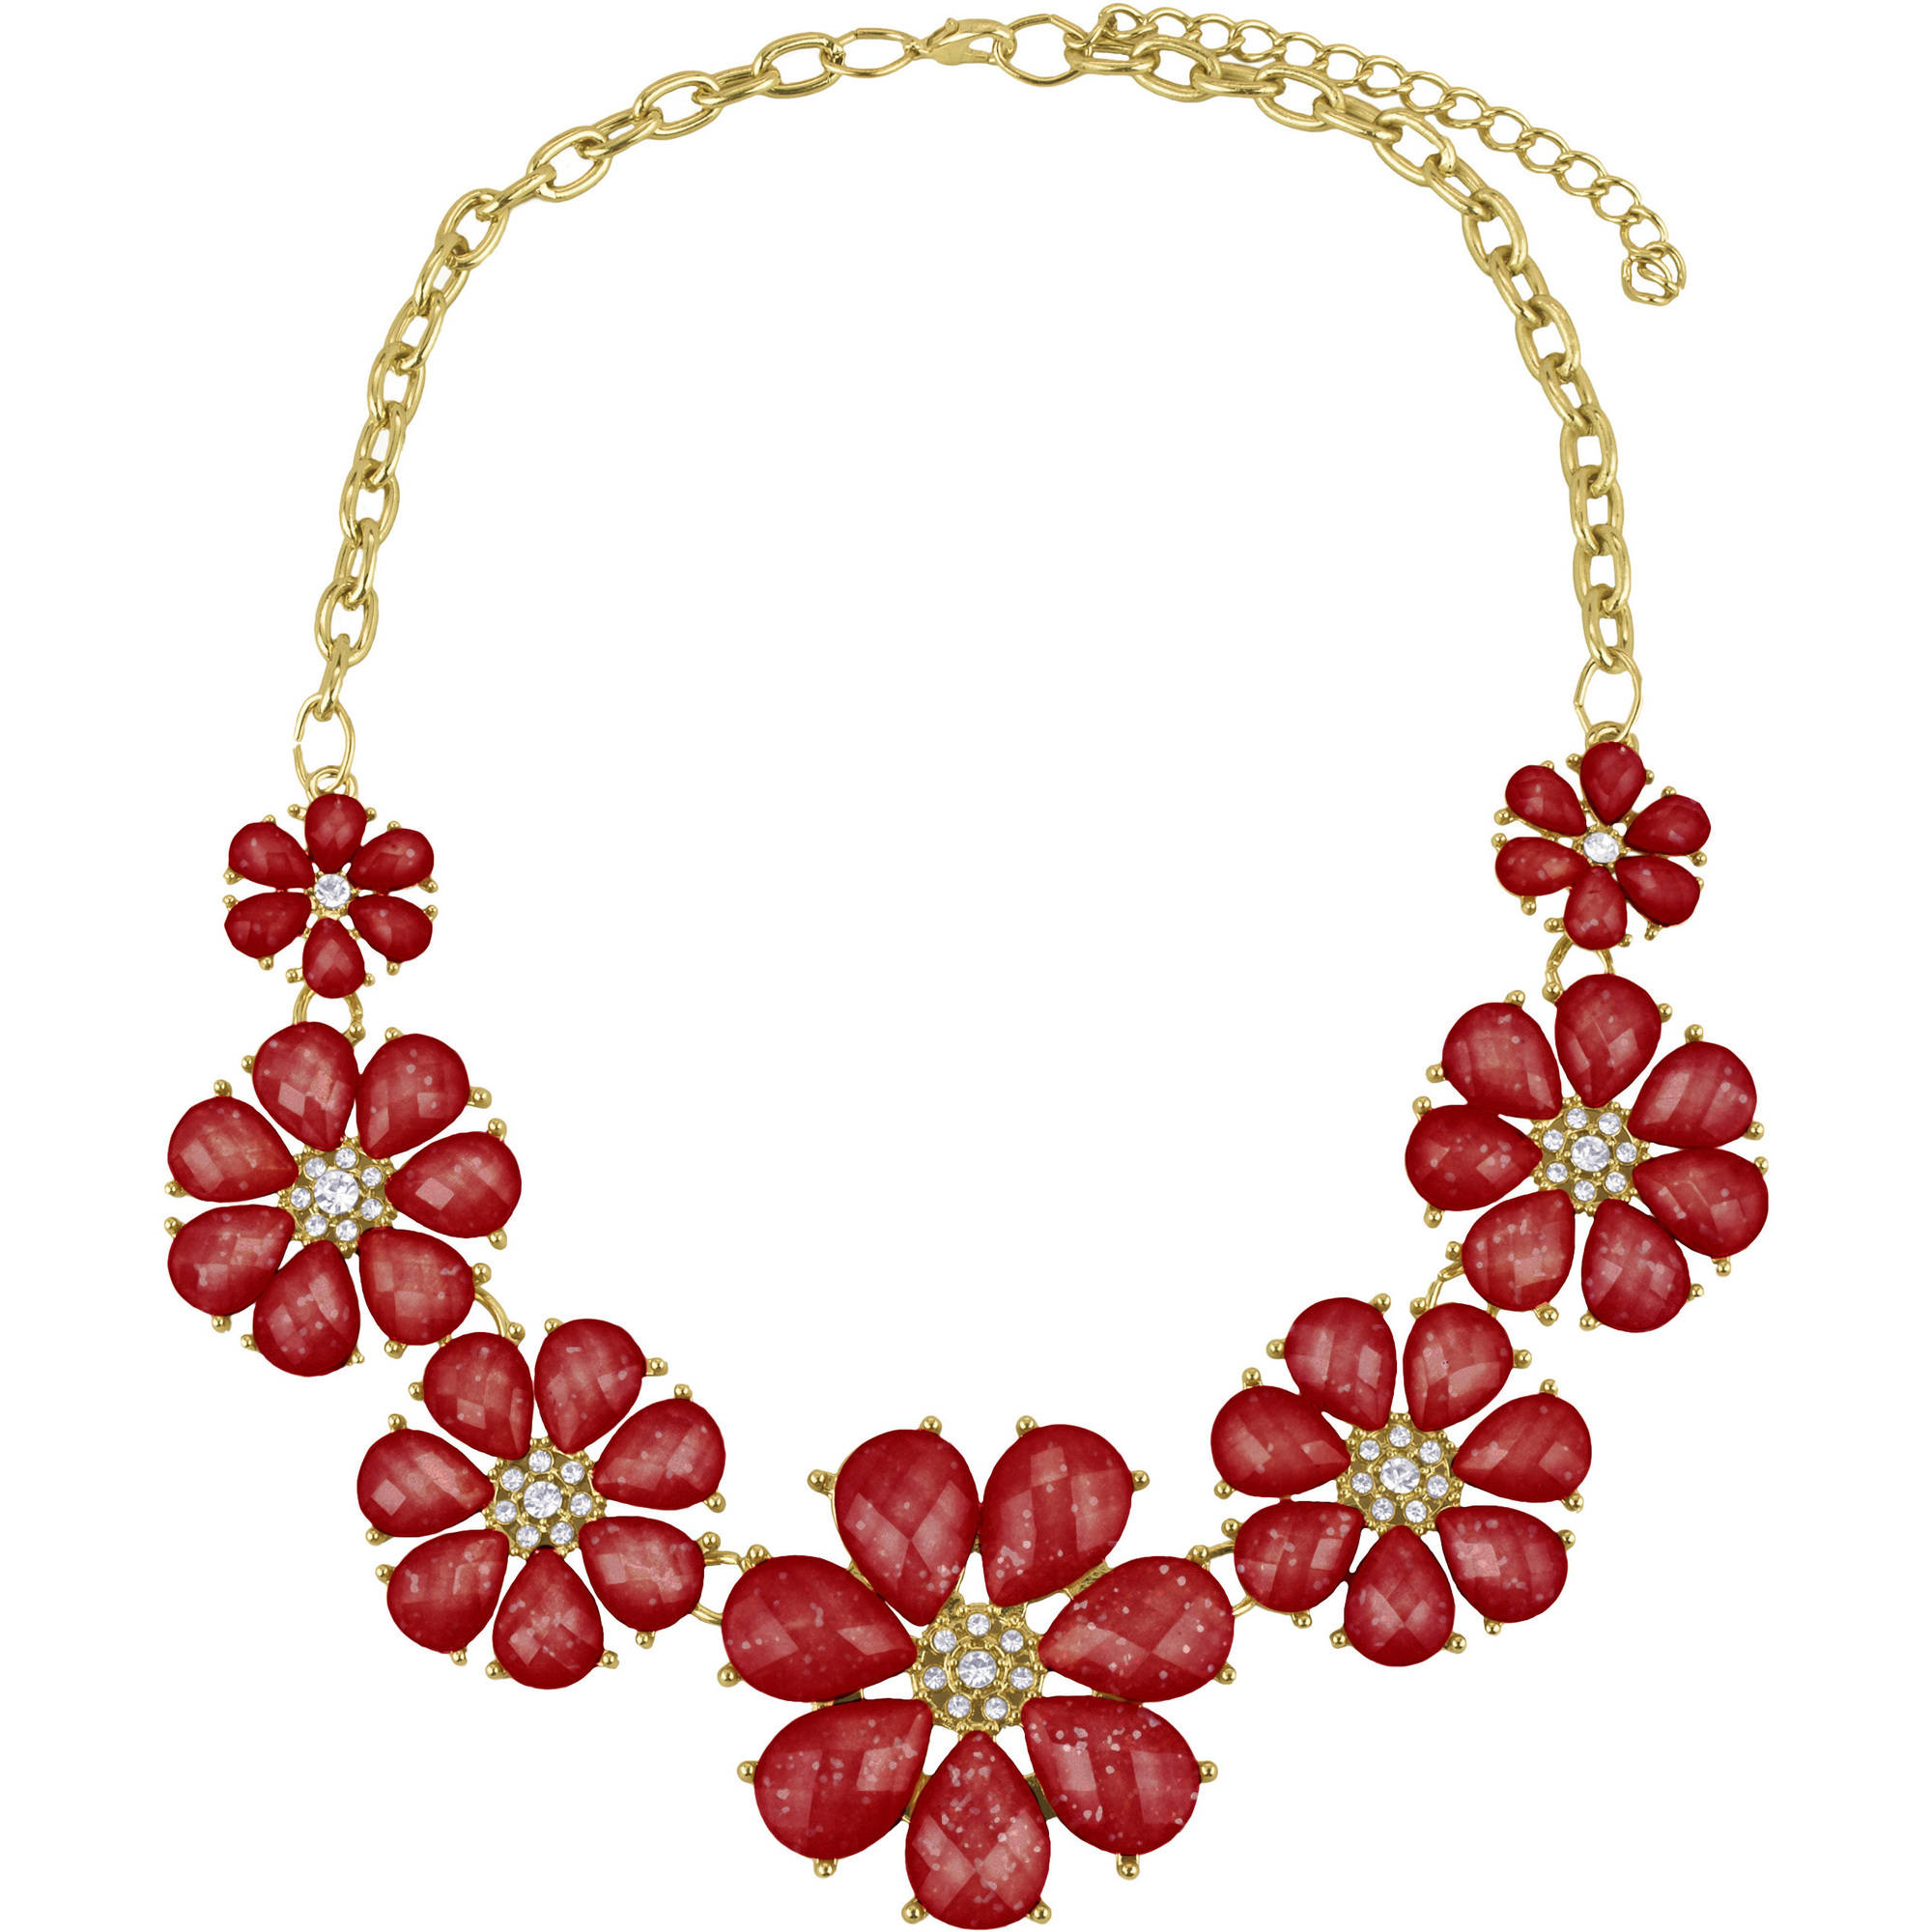 7-Flower Red Faceted Statement Bib Necklace